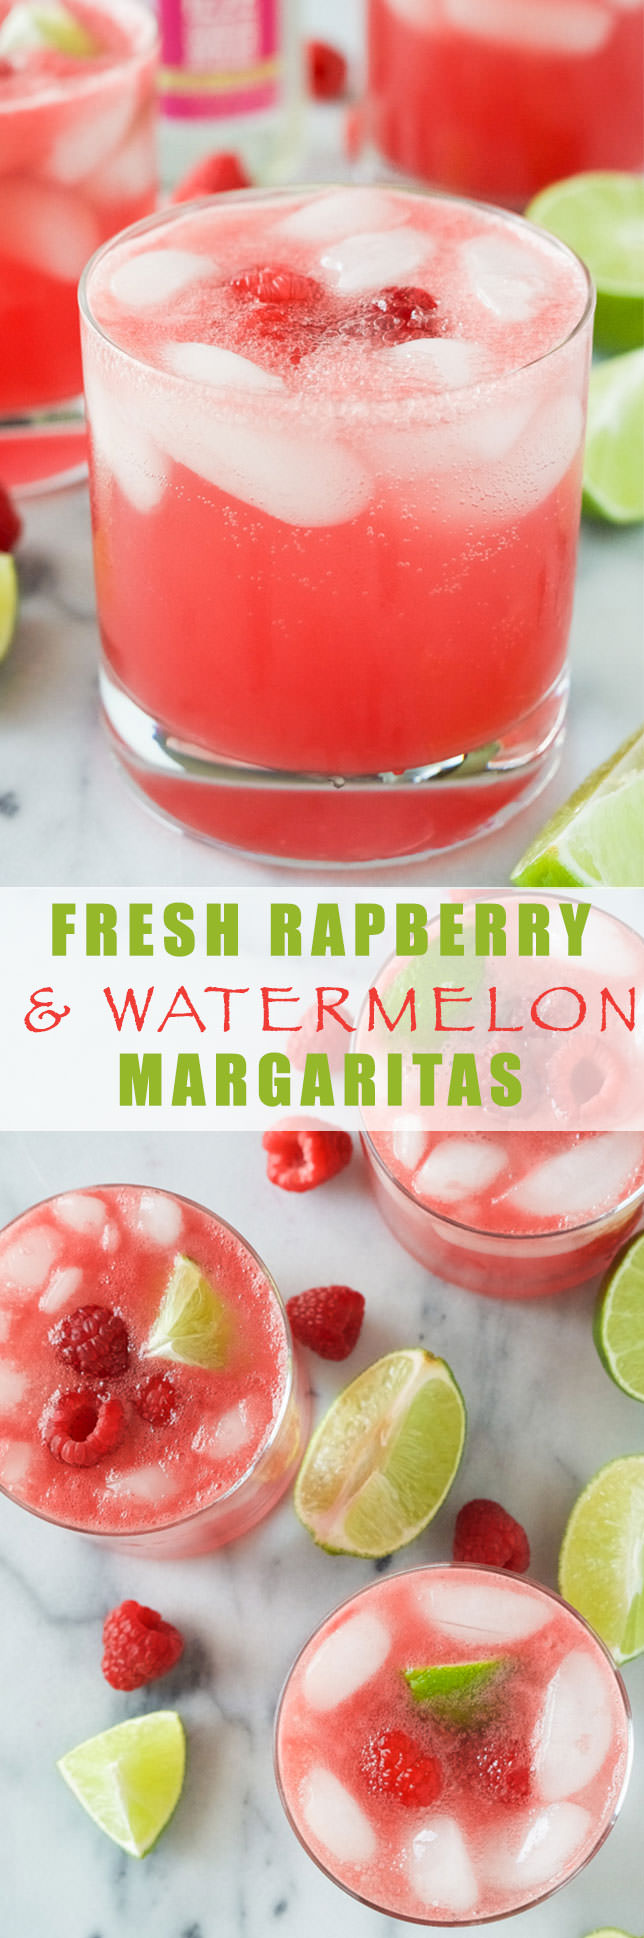 Raspberry Watermelon Margaritas are fruity and lighter thanks to fresh watermelon puree, a skinny simple syrup and the sparkling water topper! Perfect drink to kick your feet up with!